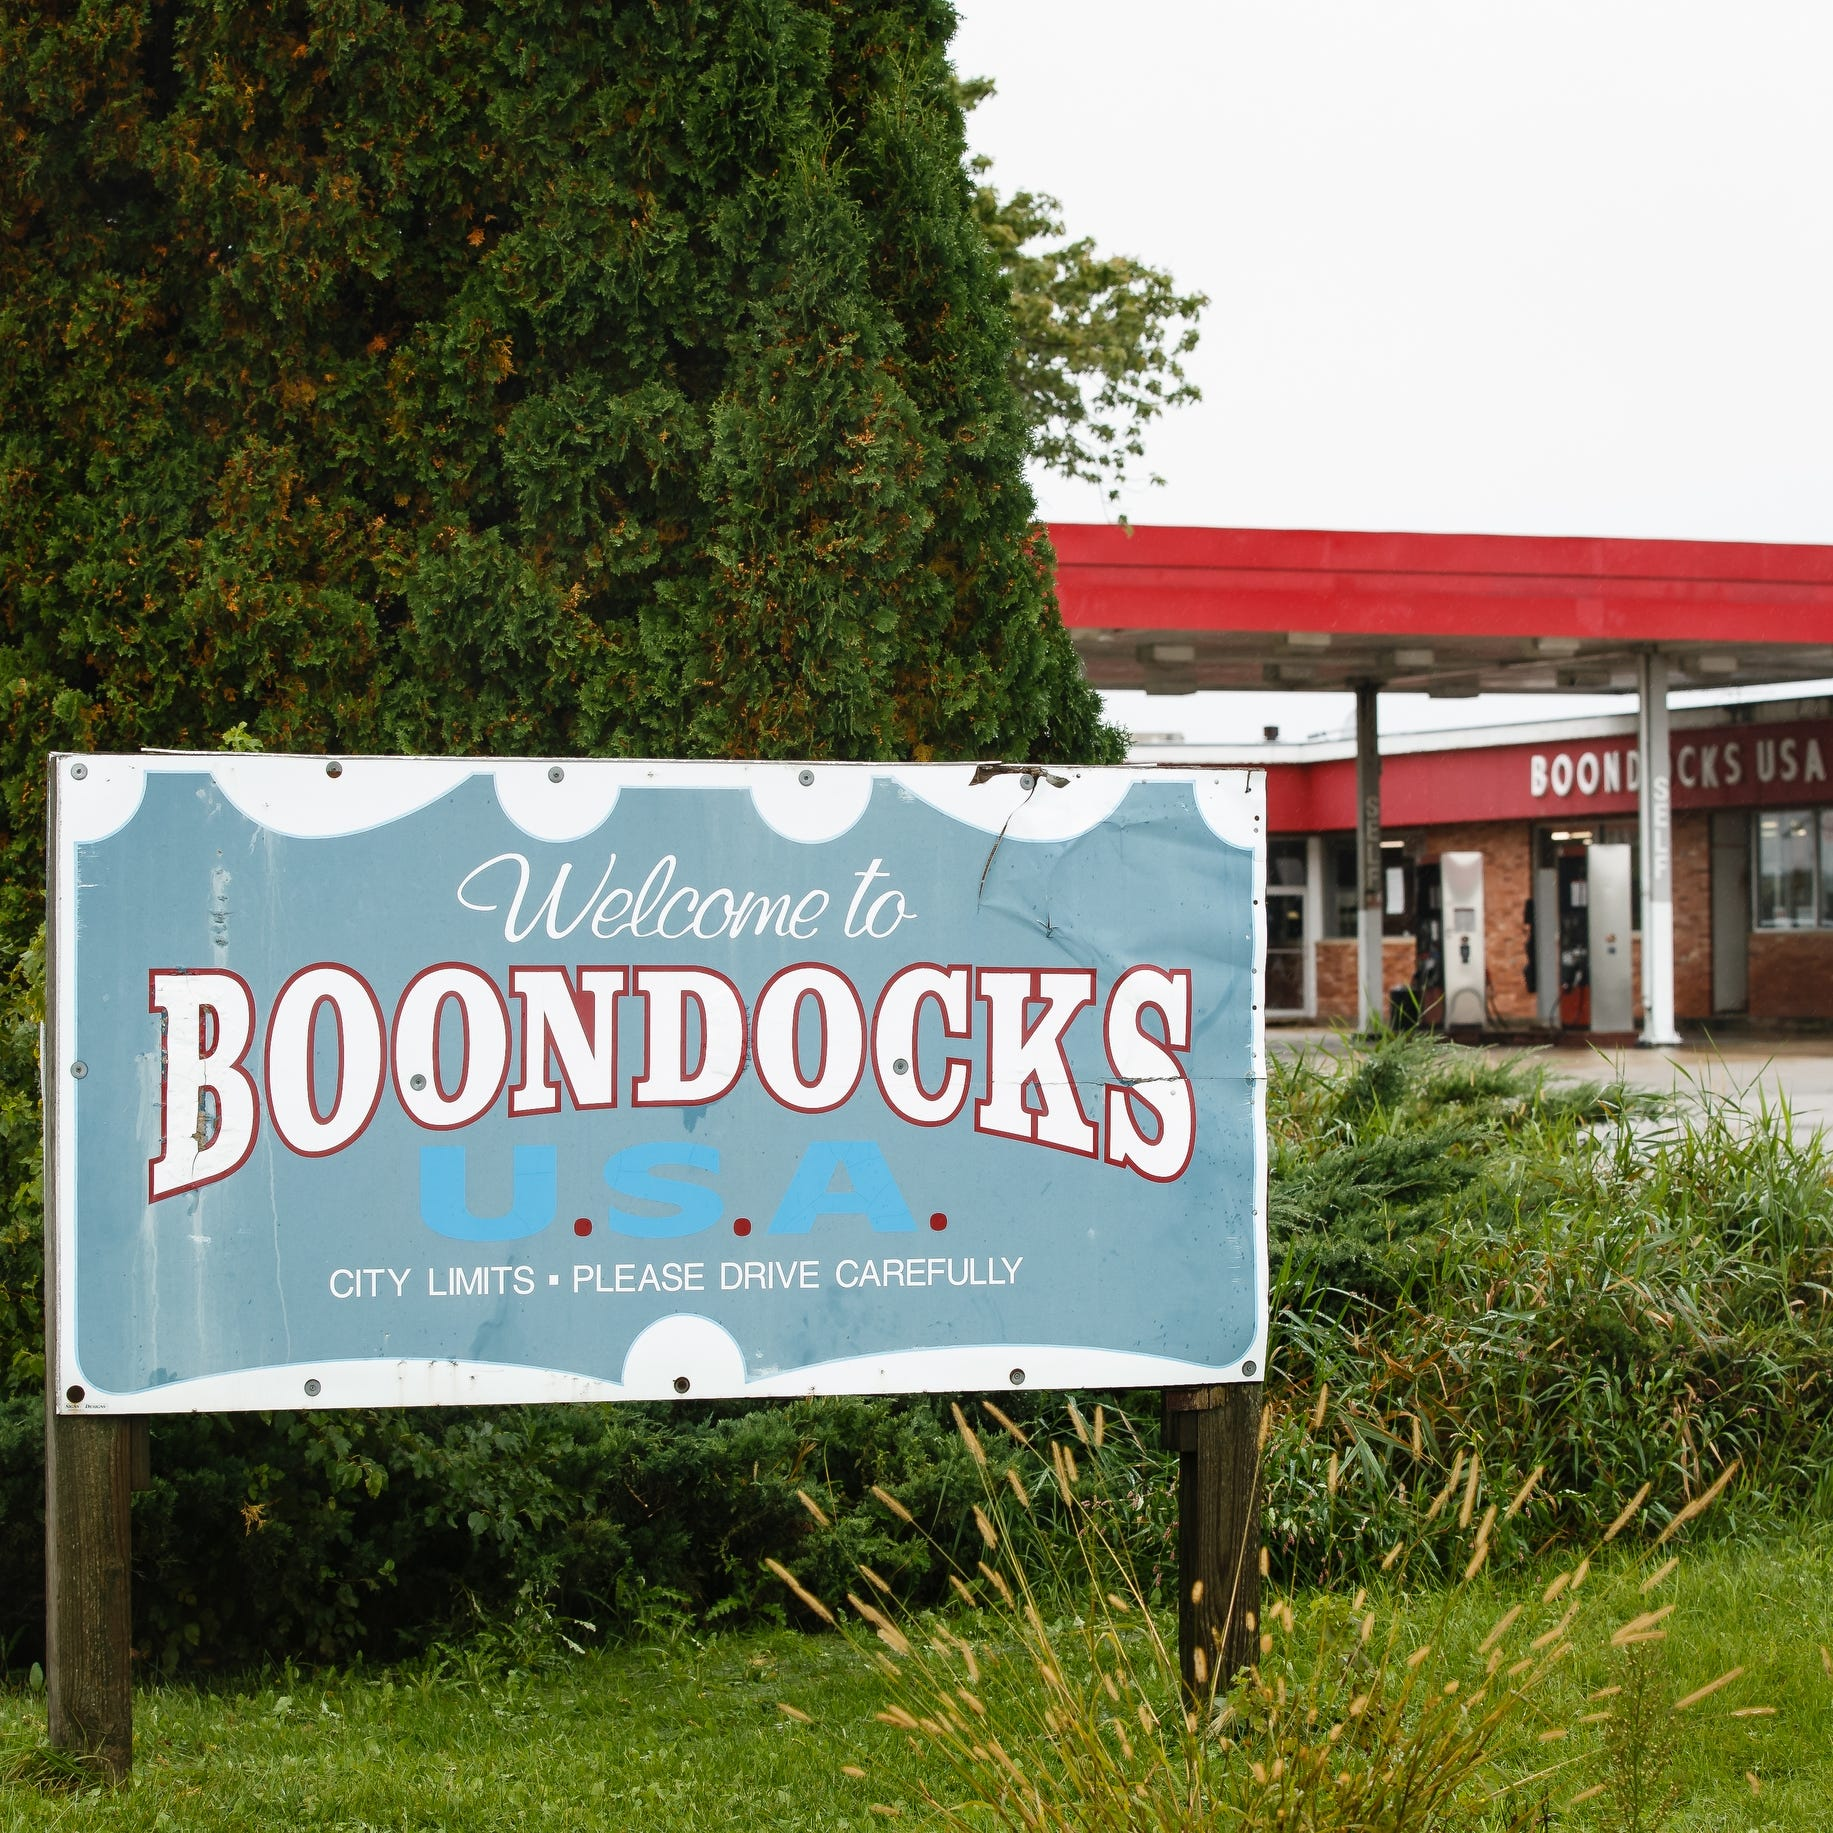 Iowa landmark Boondocks will re-open as a truck stop with an Indian restaurant